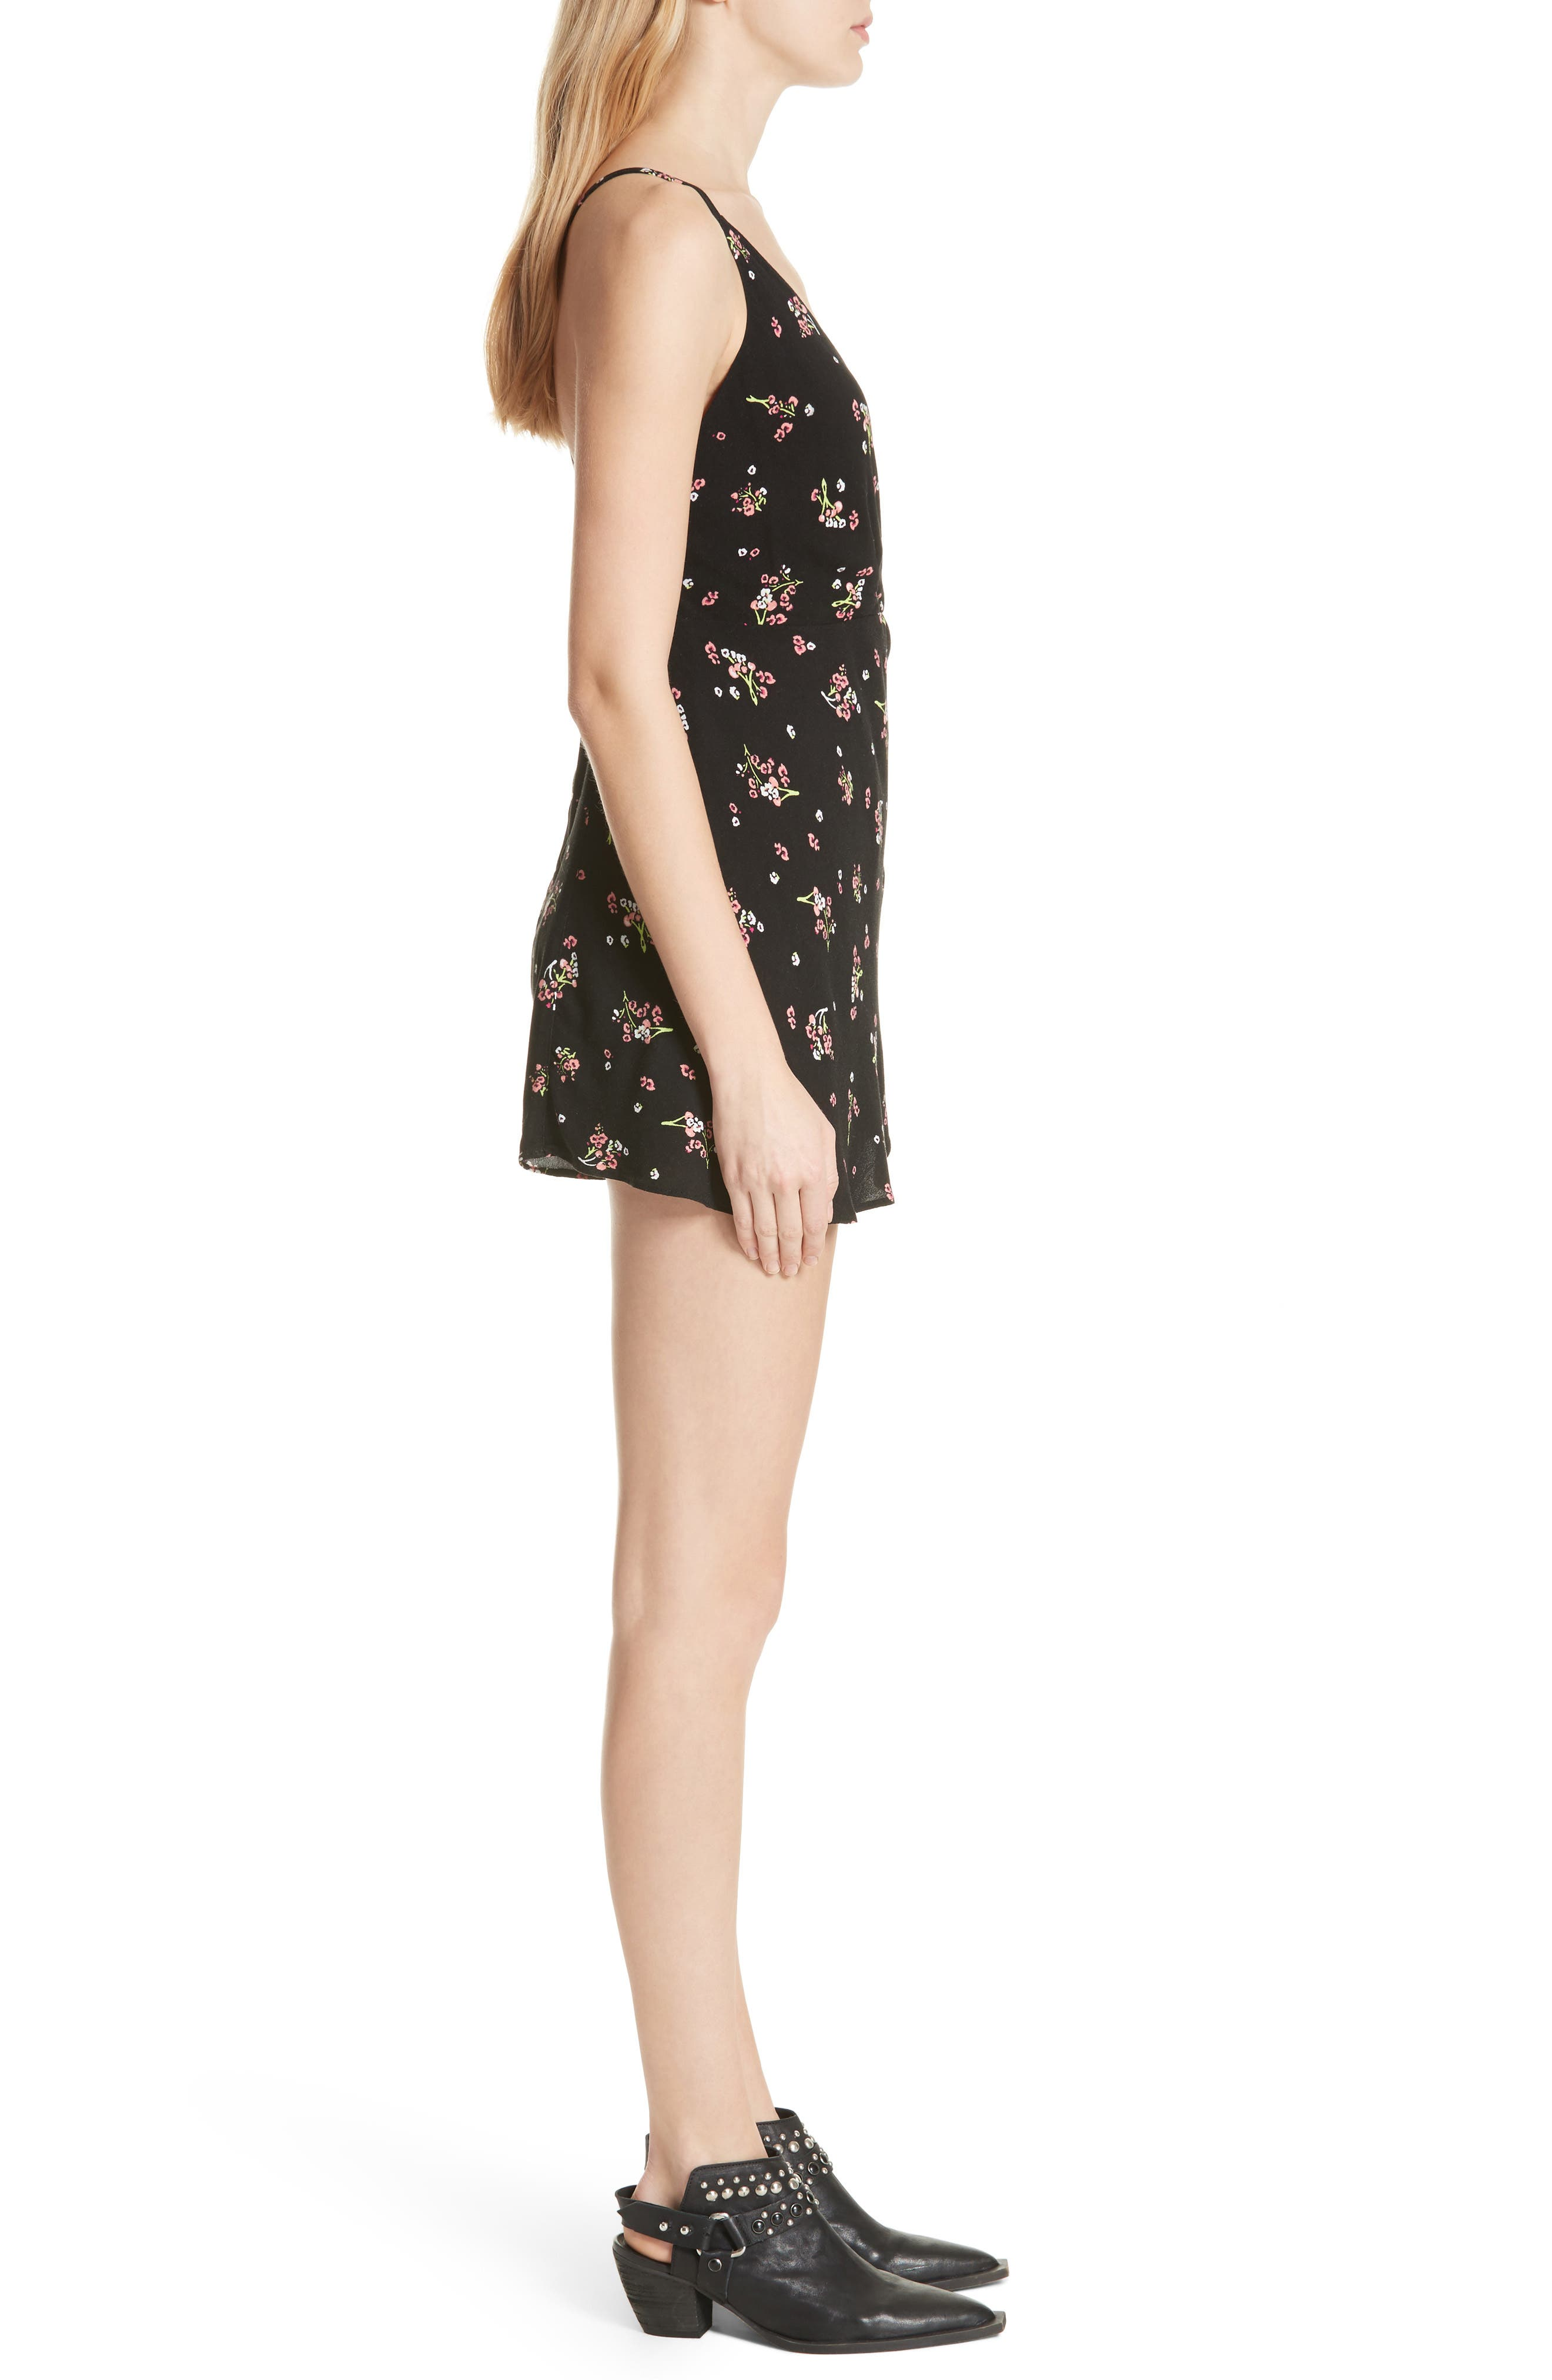 FREE PEOPLE,                             Tango at Night Romper,                             Alternate thumbnail 3, color,                             001